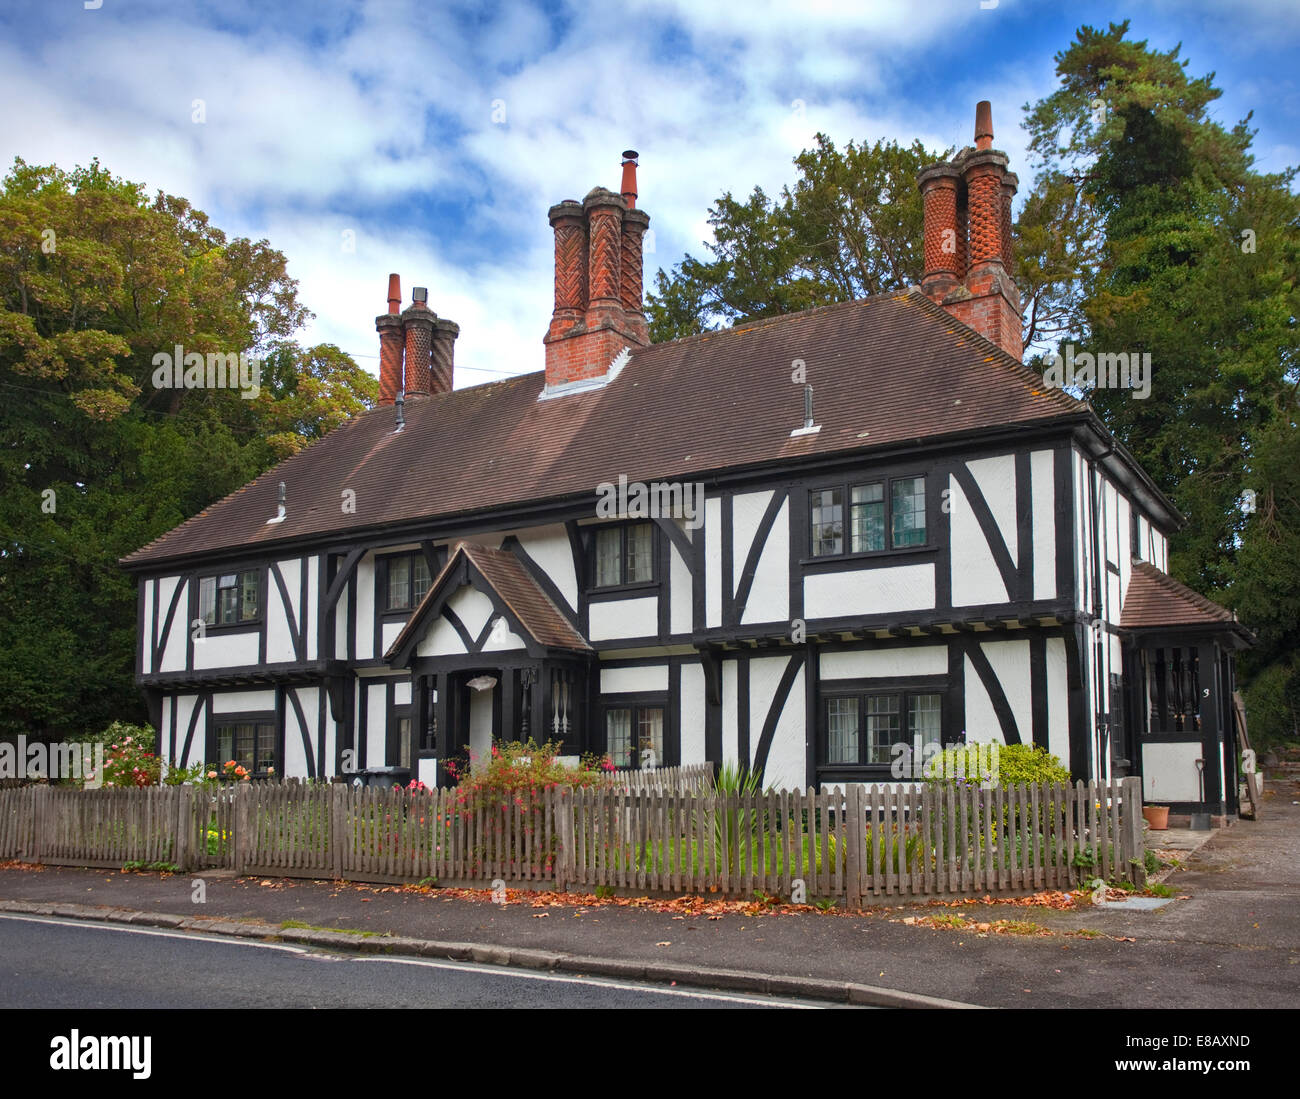 Tudor Cottage, Hursley, Hampshire, England - Stock Image